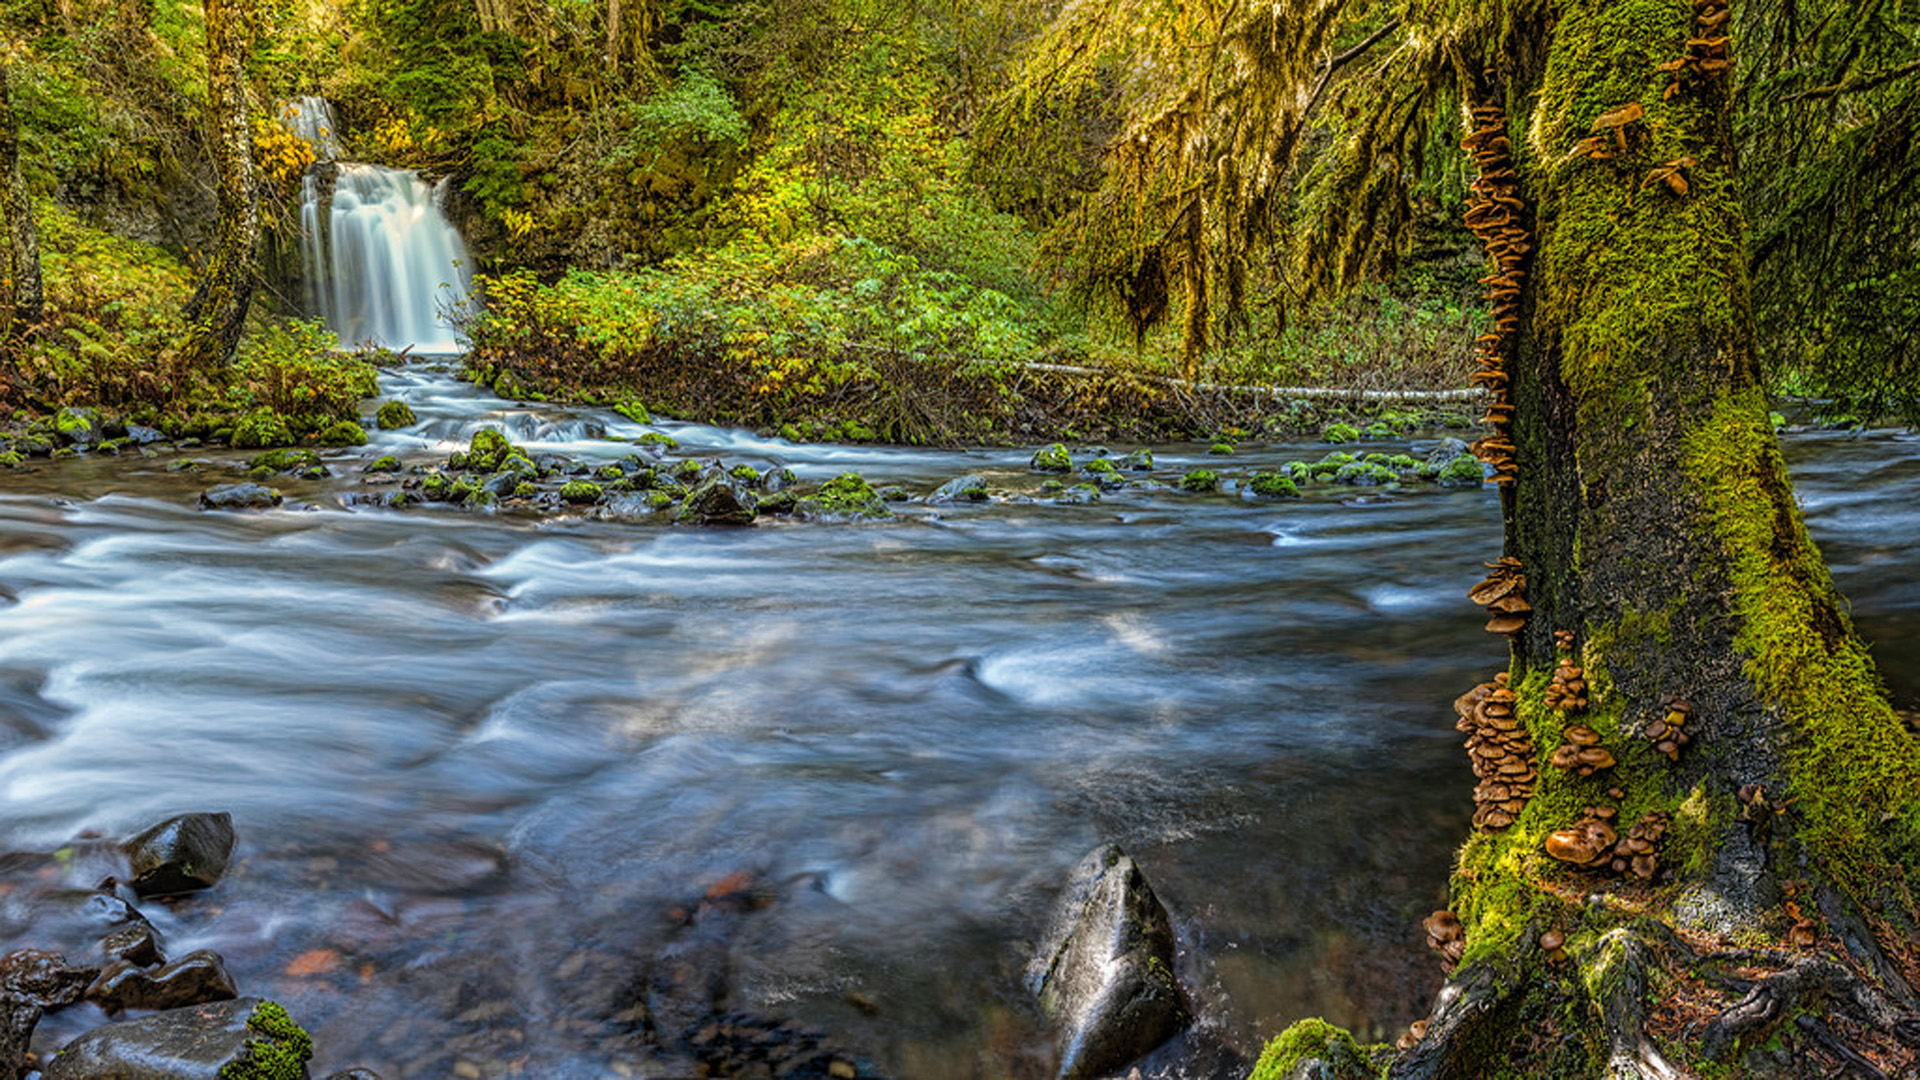 Fall Pc Wallpaper Free Gifford Pinchot National Forest National Park And Lewis